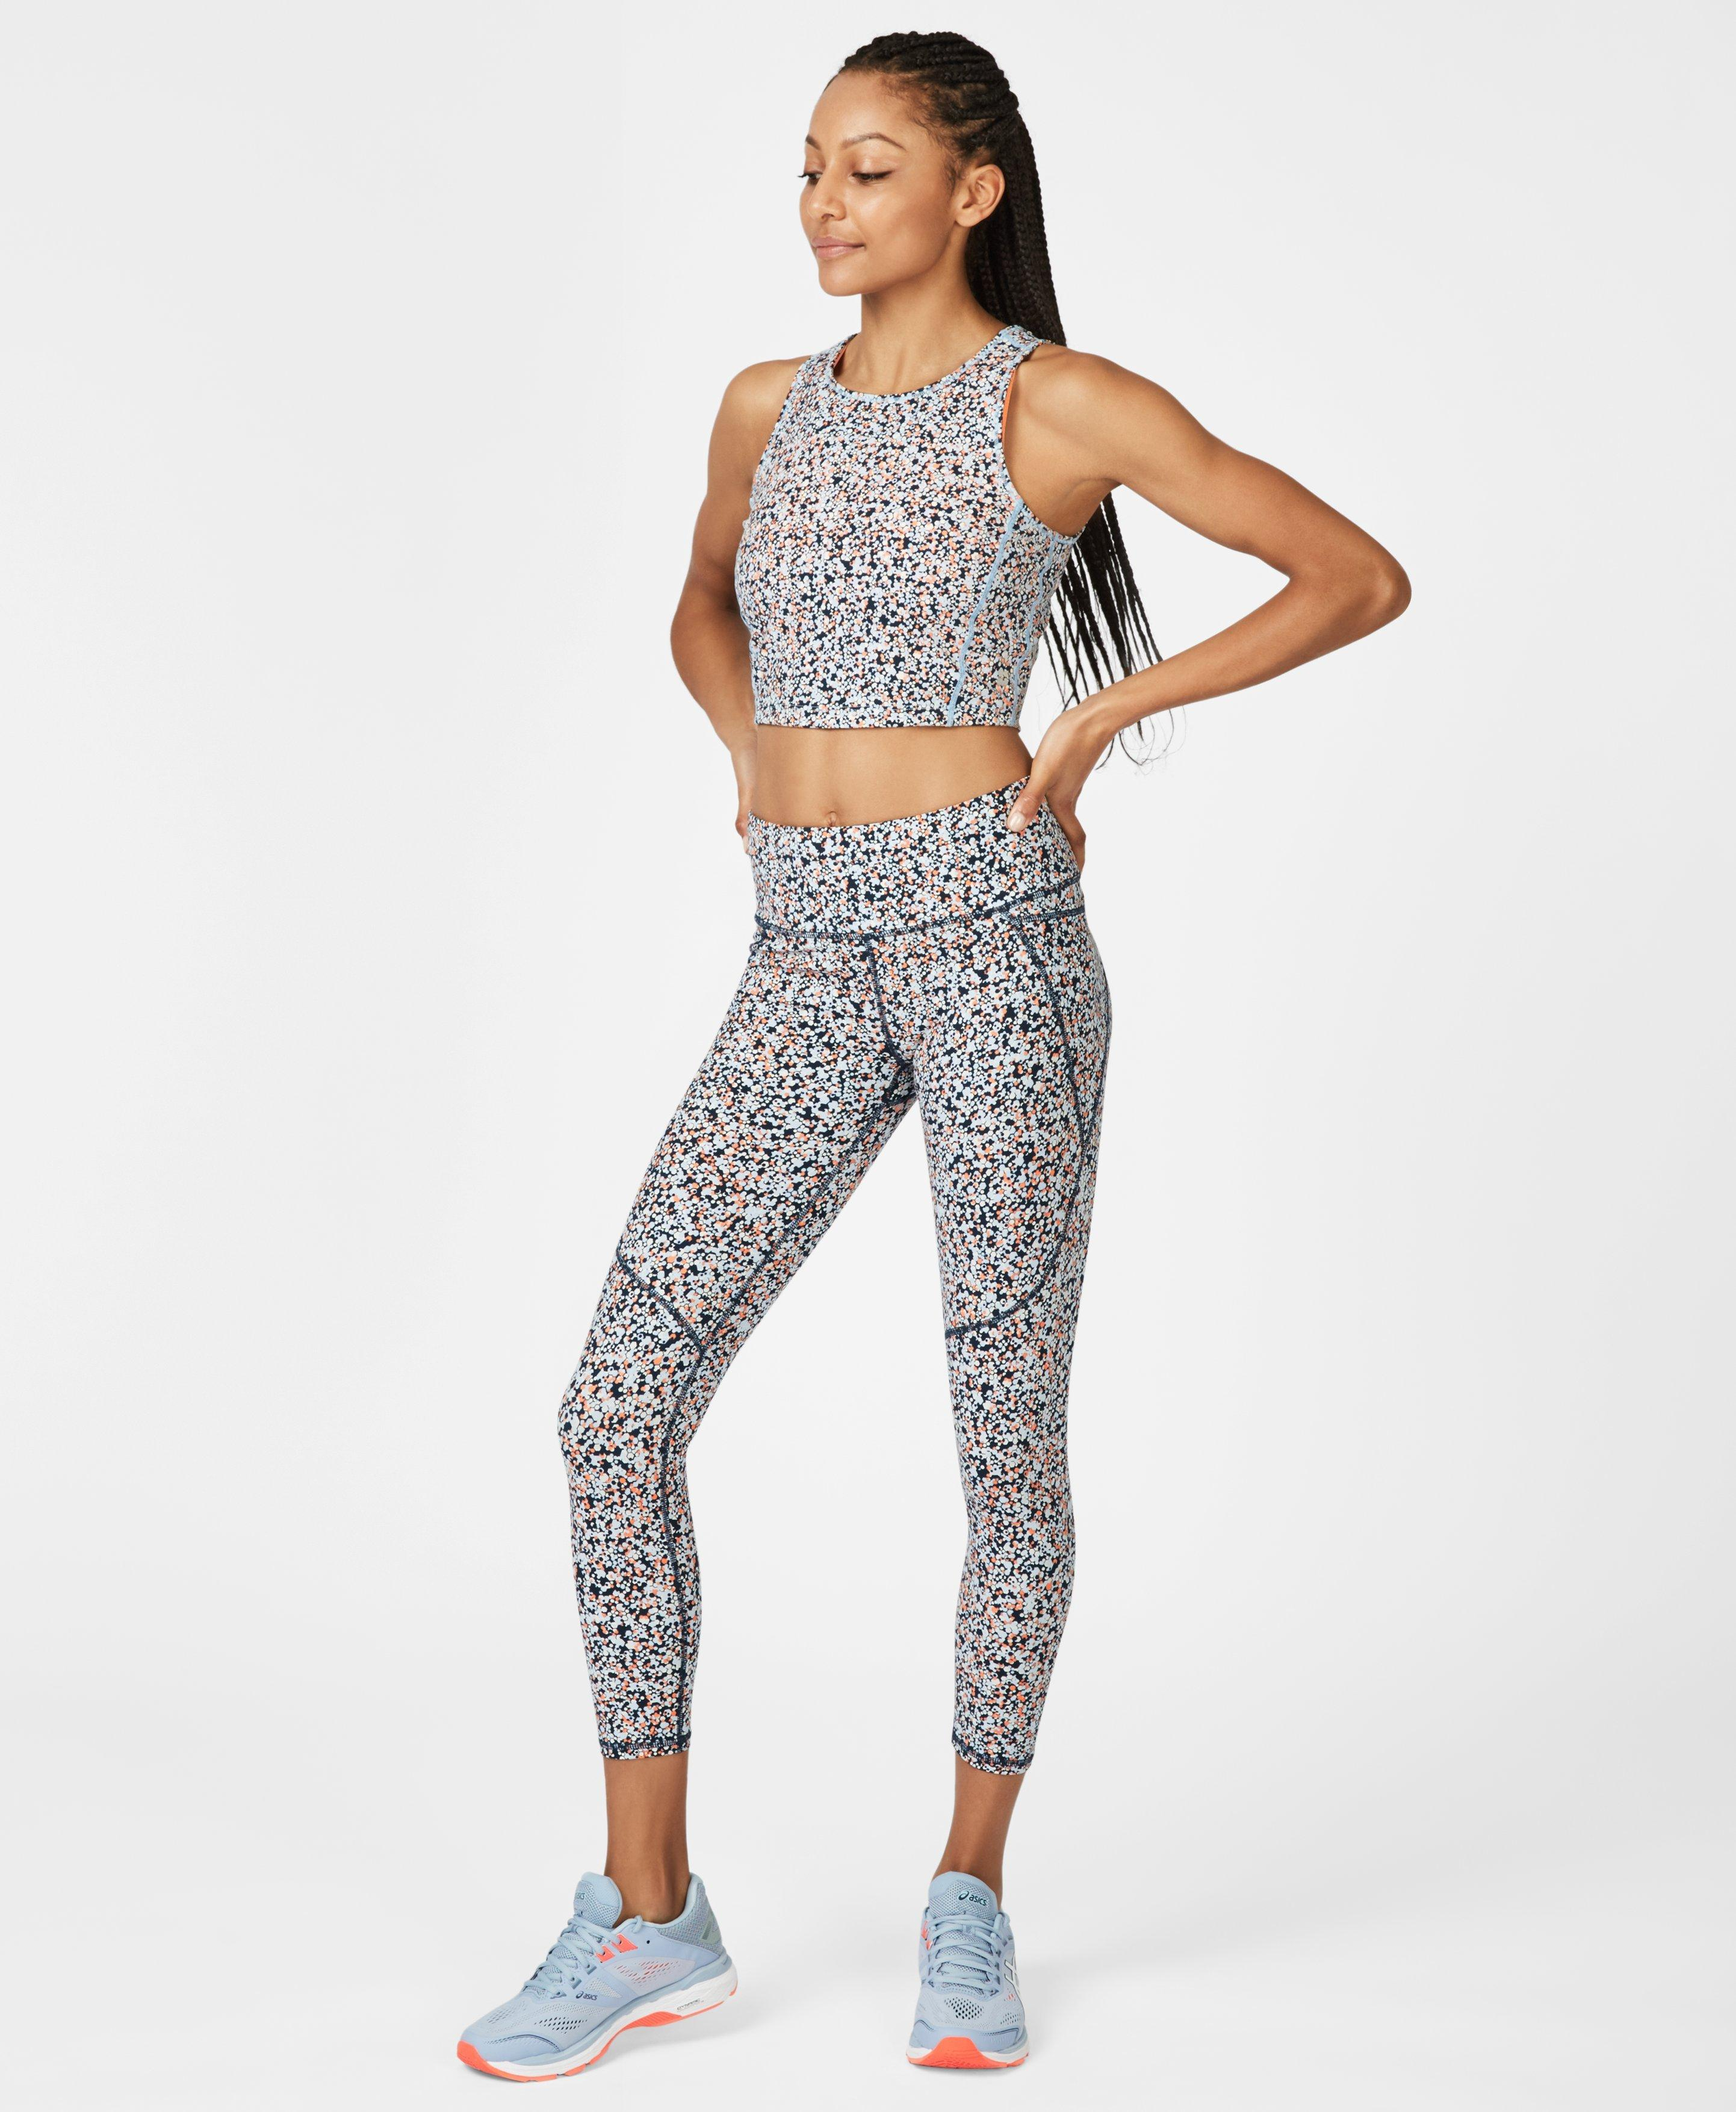 Power Infinity Blue Hexagon Set,  | Sweaty Betty